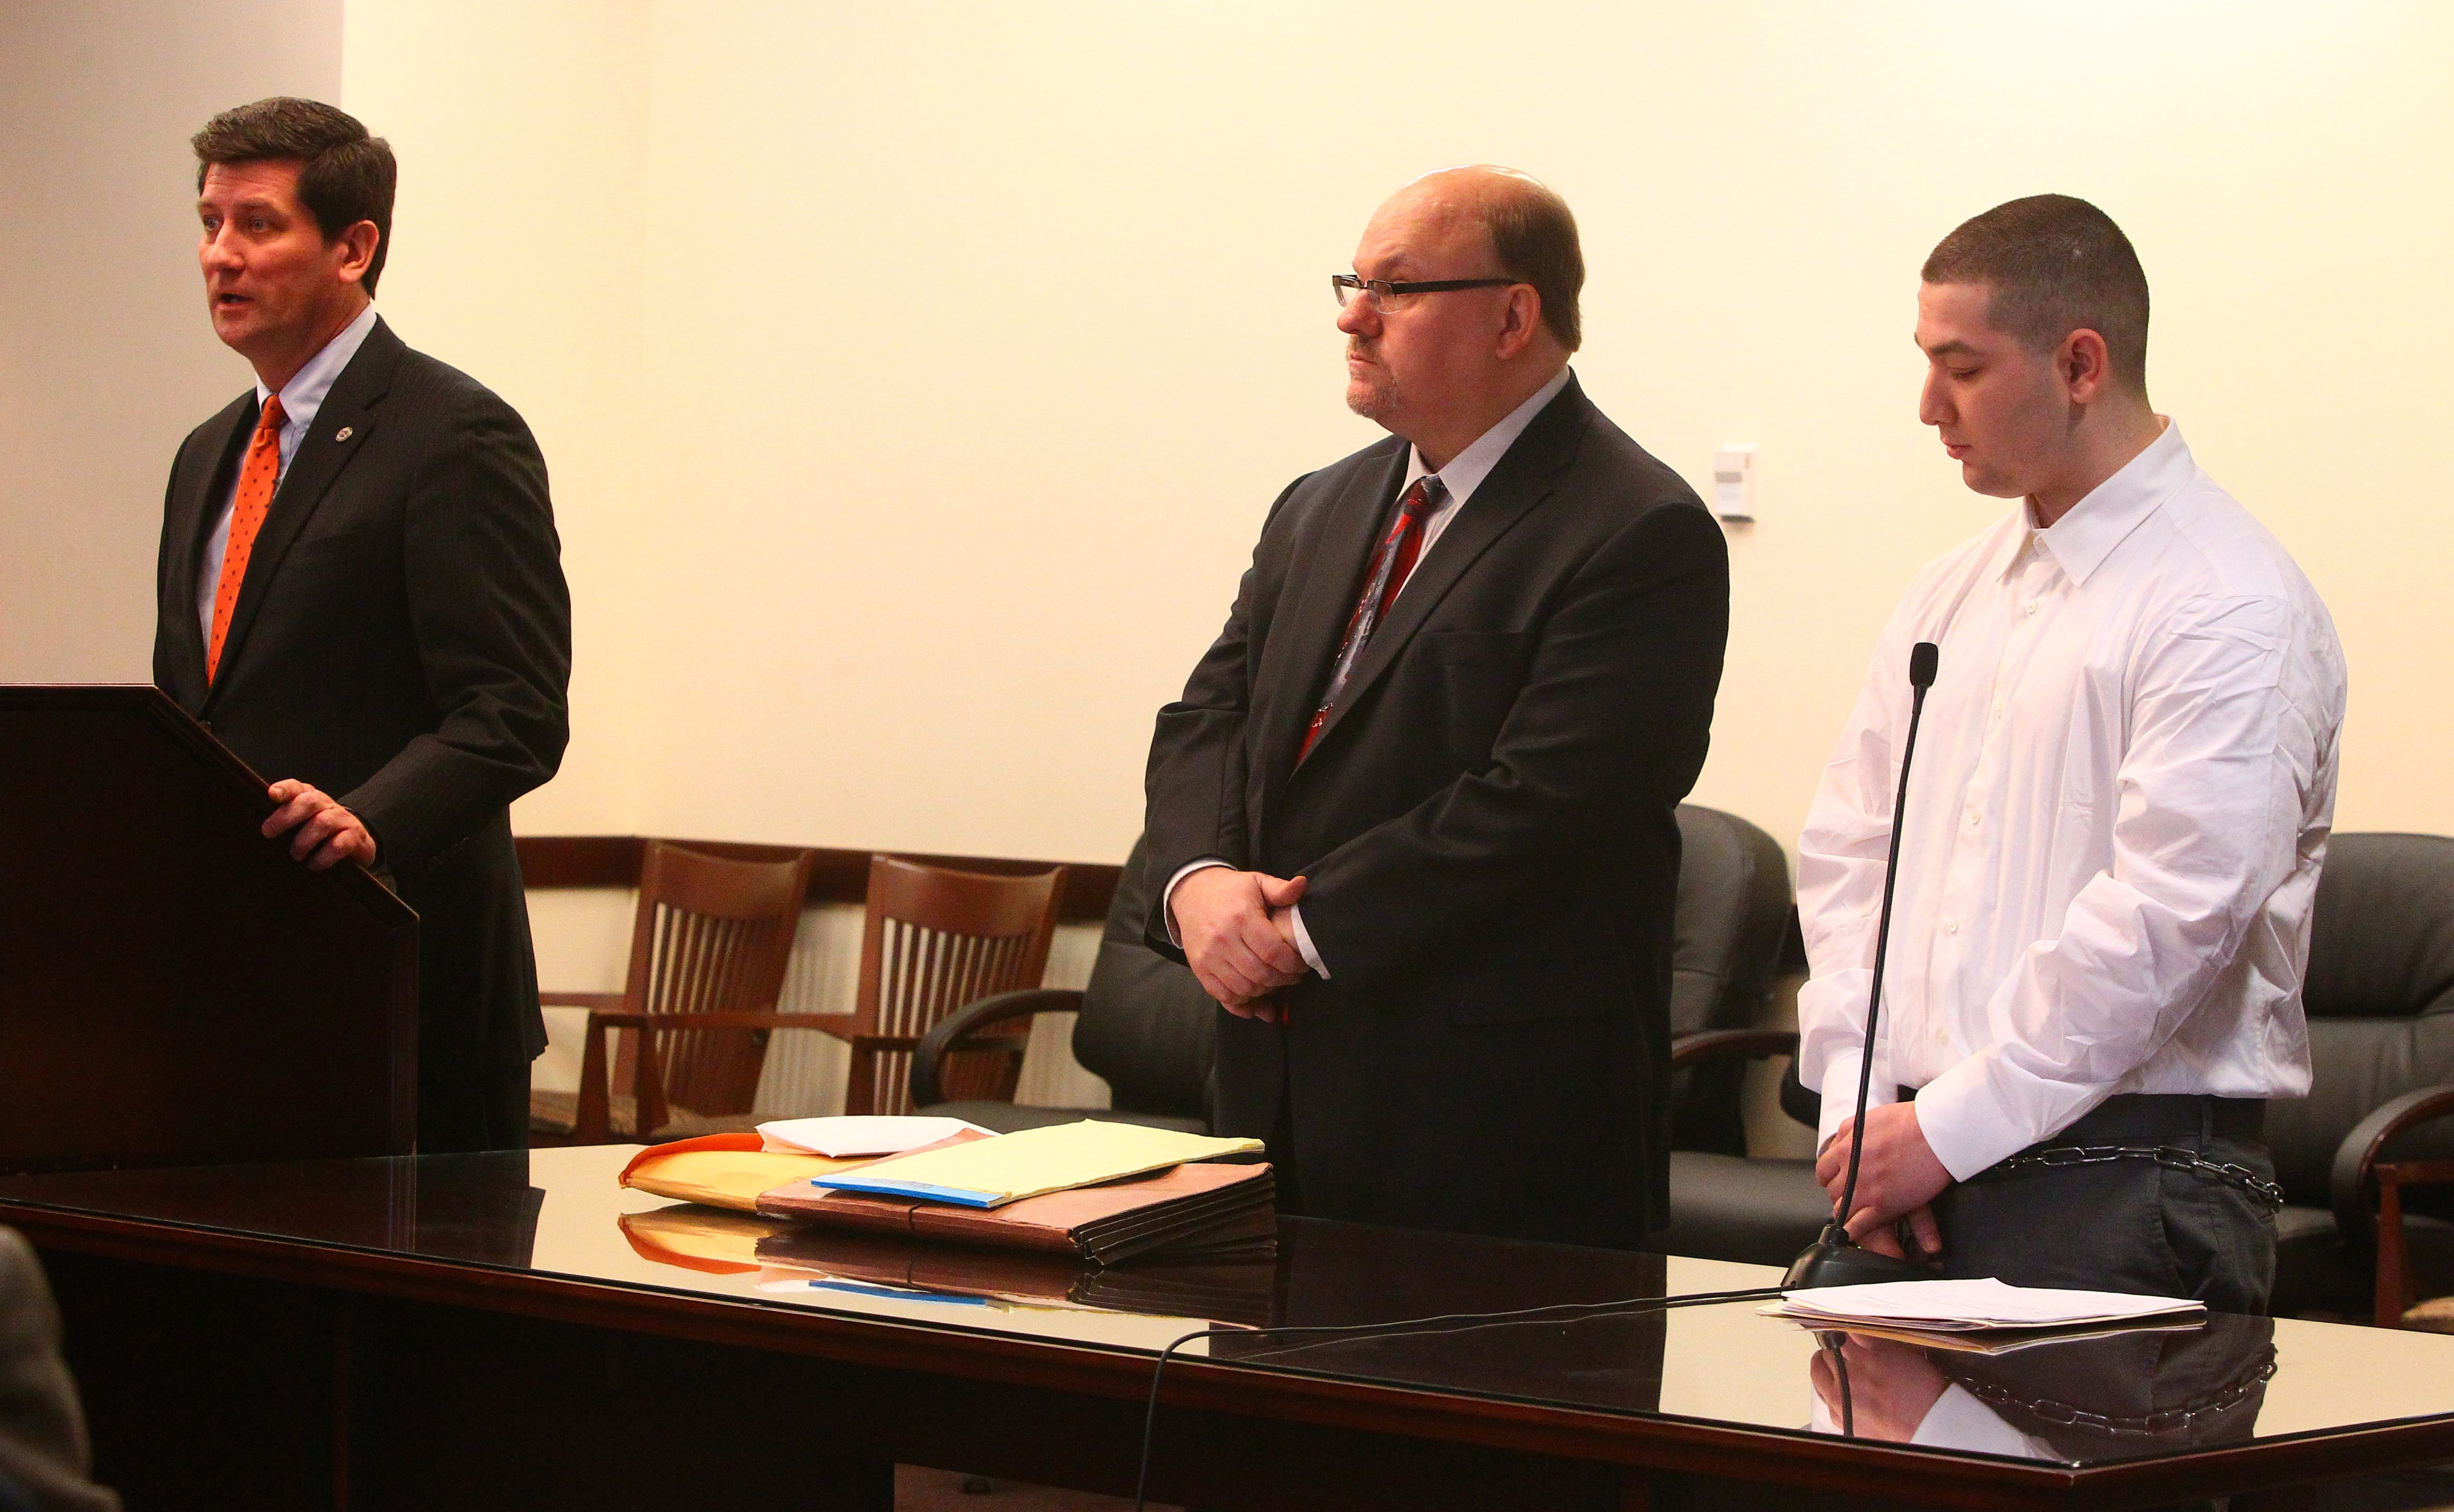 Erie County Executive Mark Poloncarz, left, testifies at the courtroom sentencing of Avello Pena, right, as attorney Frank Bybel, center, listens. Pena pleaded guilty to breaking into Poloncarz's car and home Tuesday and was sentenced to eight years in prison.